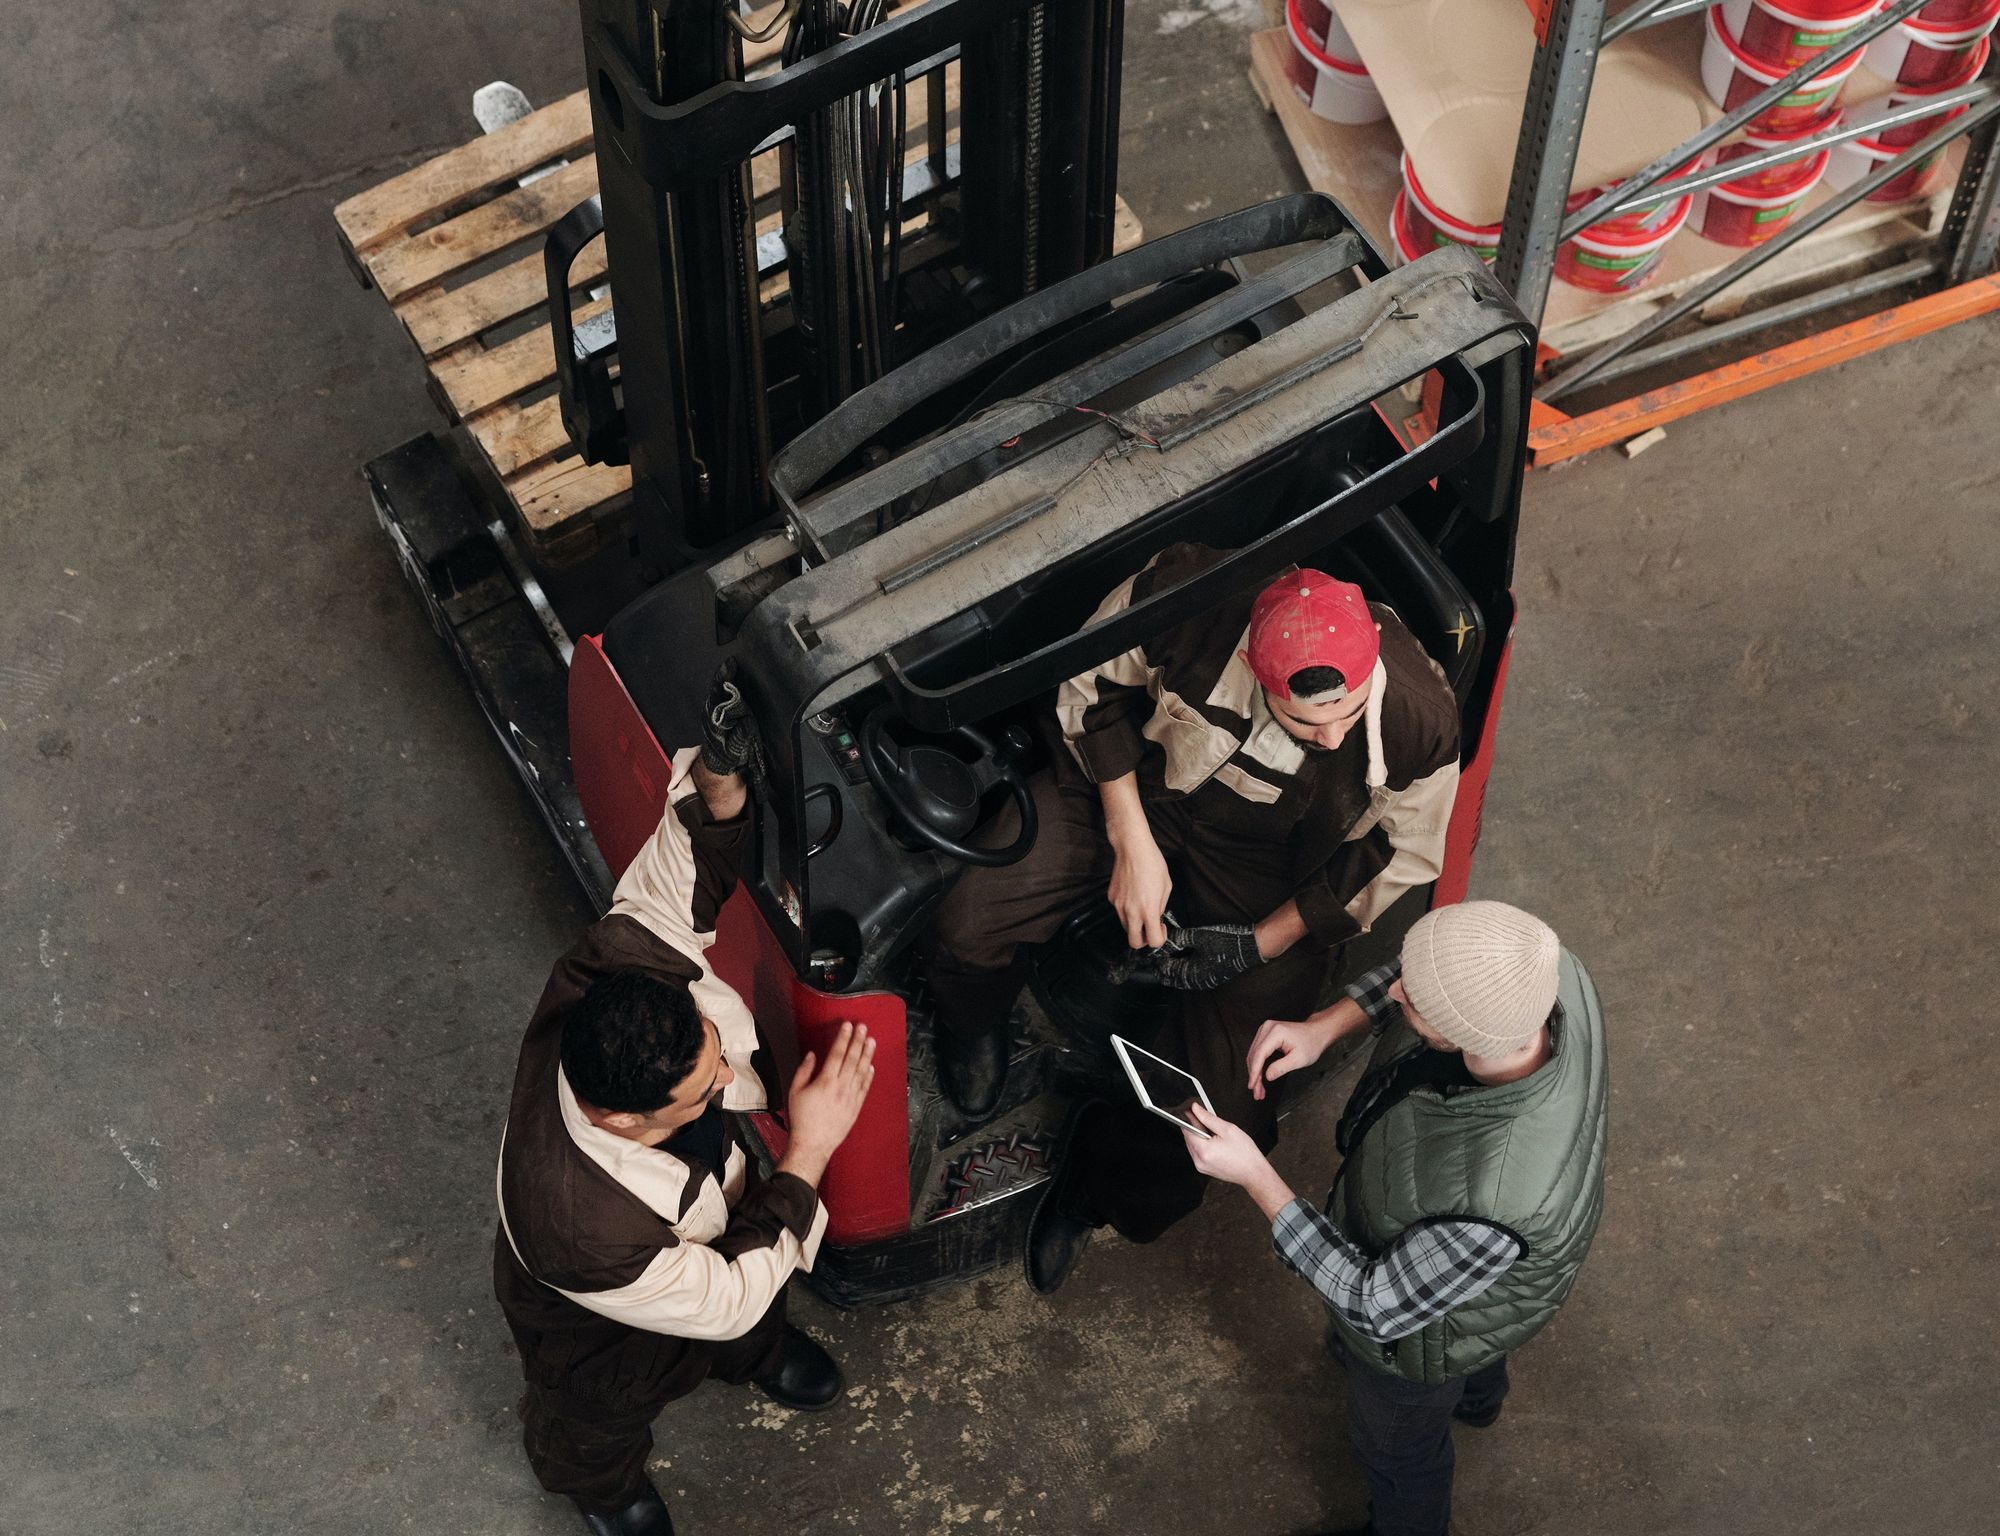 Three men in a warehouse talking with an iPad.